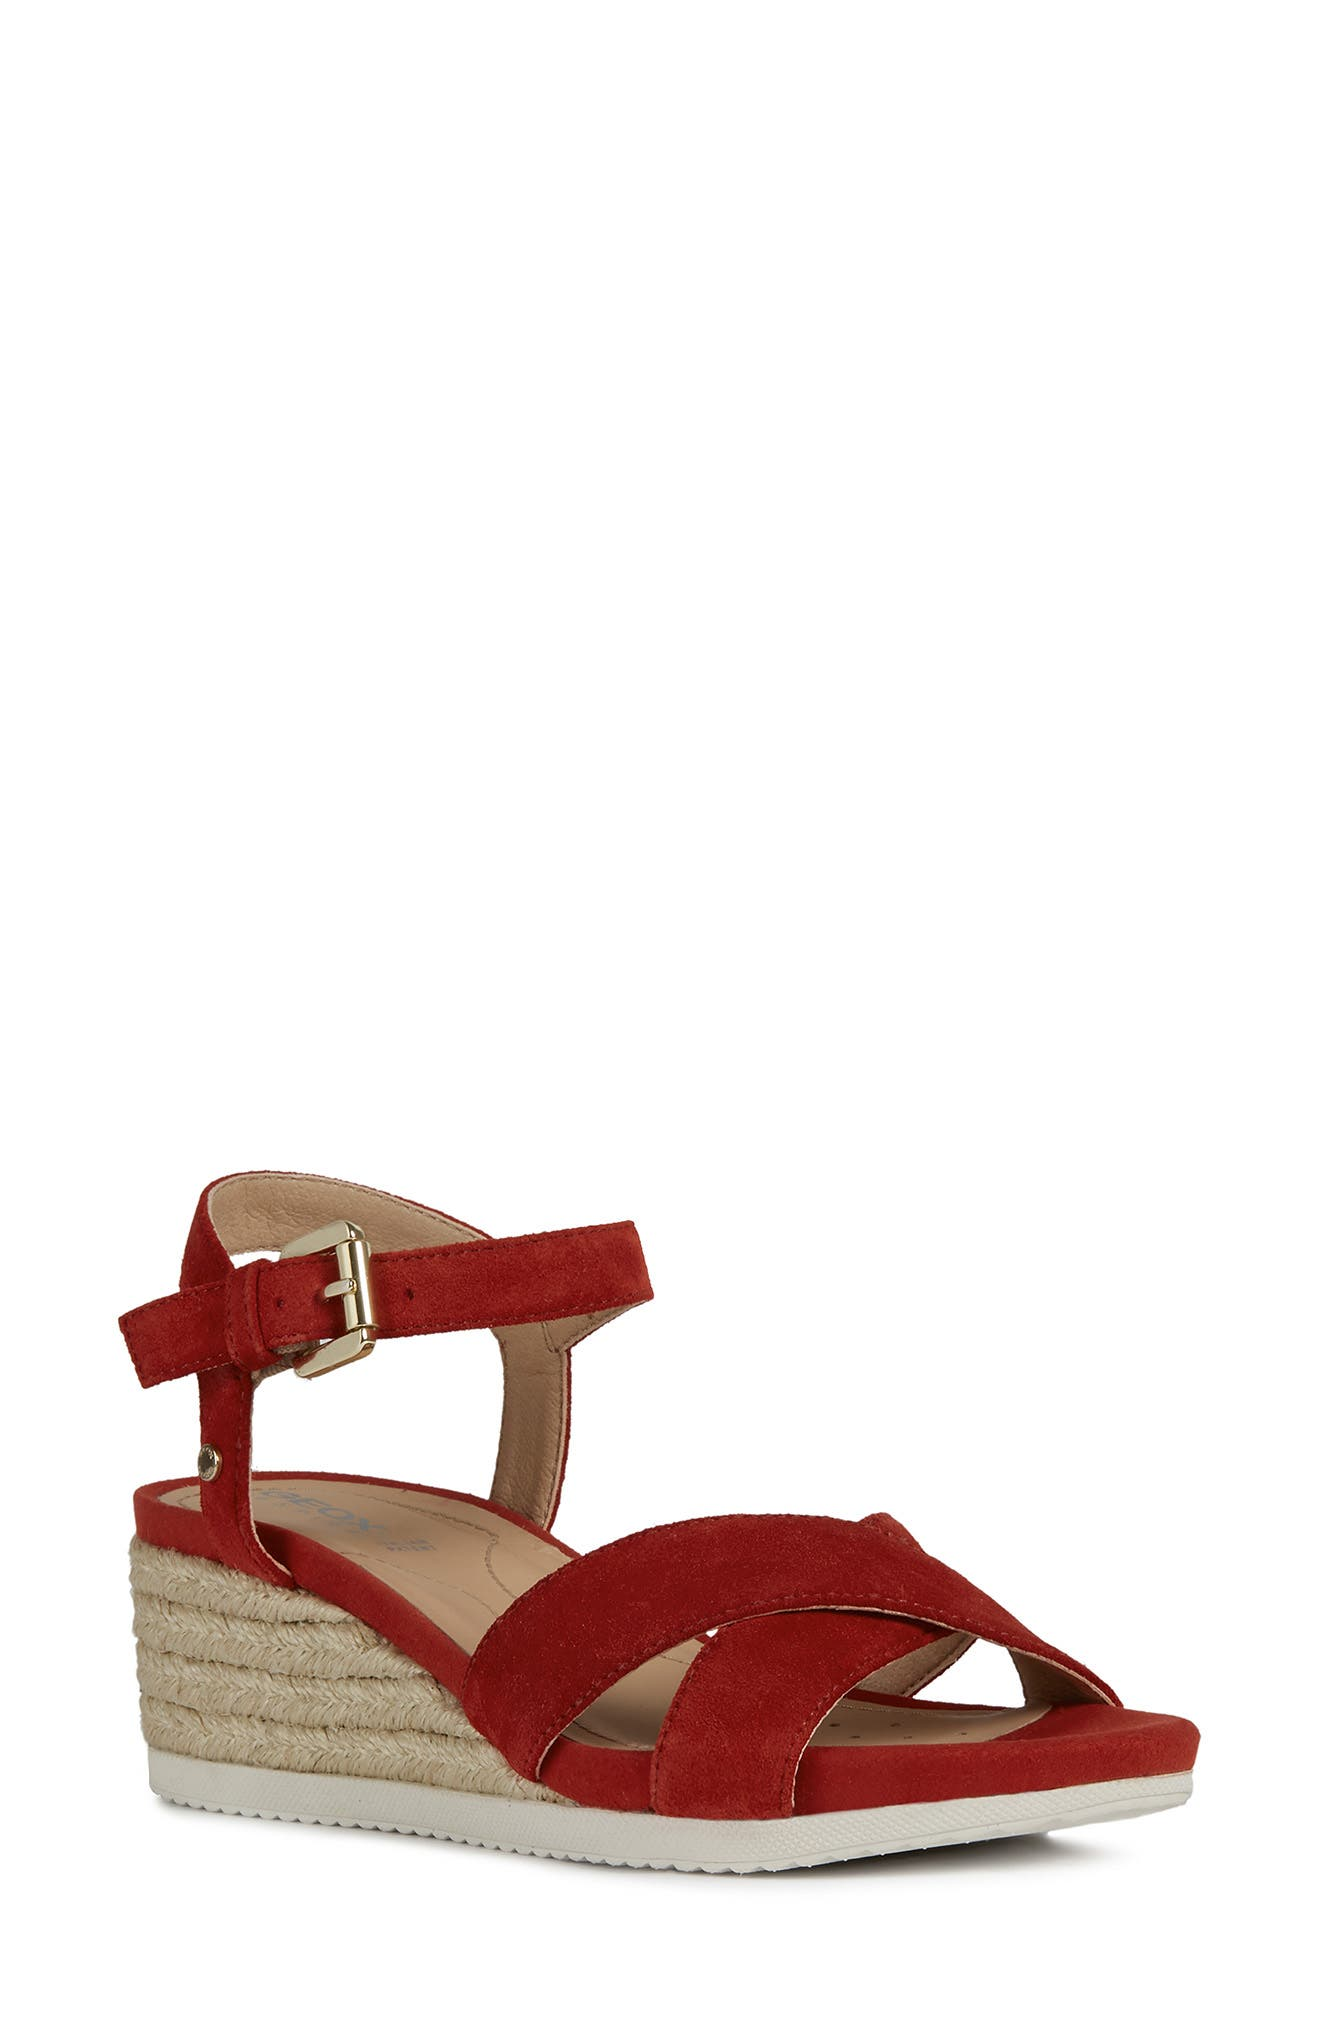 Geox B Sandal Nicely Tong Fille